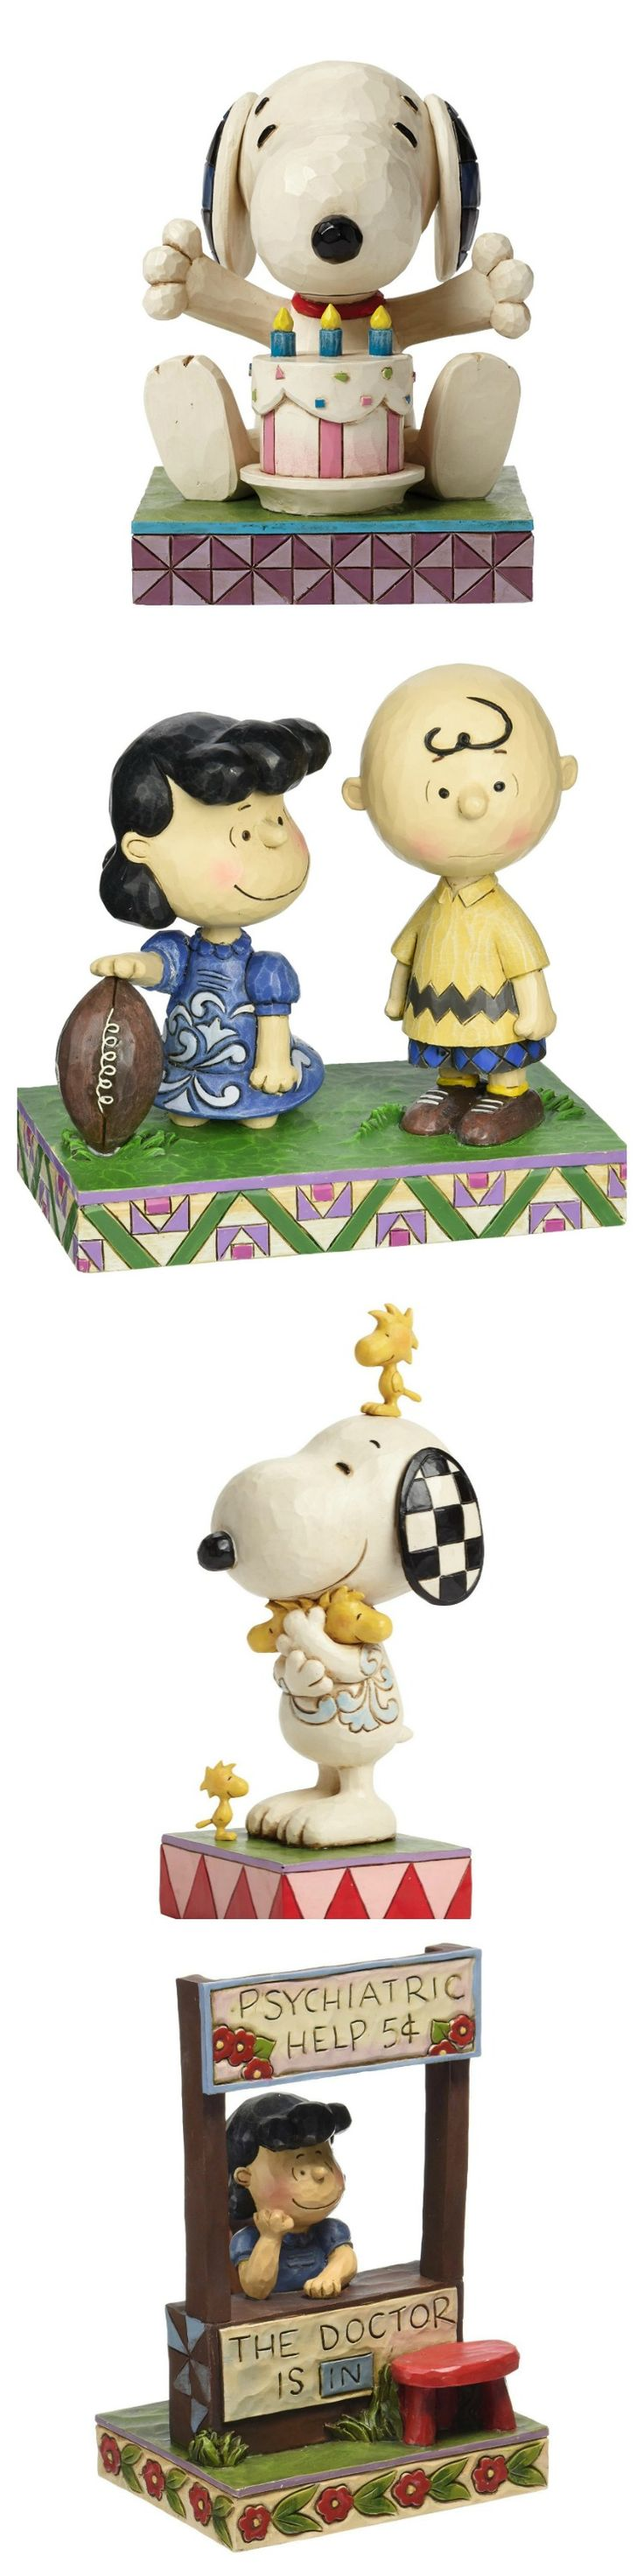 Mark your next special occasion with the Peanuts Gang! Add a Snoopy and Charlie Brown figurine created by Jim Shore to your seasonal and holiday decor. Start shopping via CollectPeanuts.com.